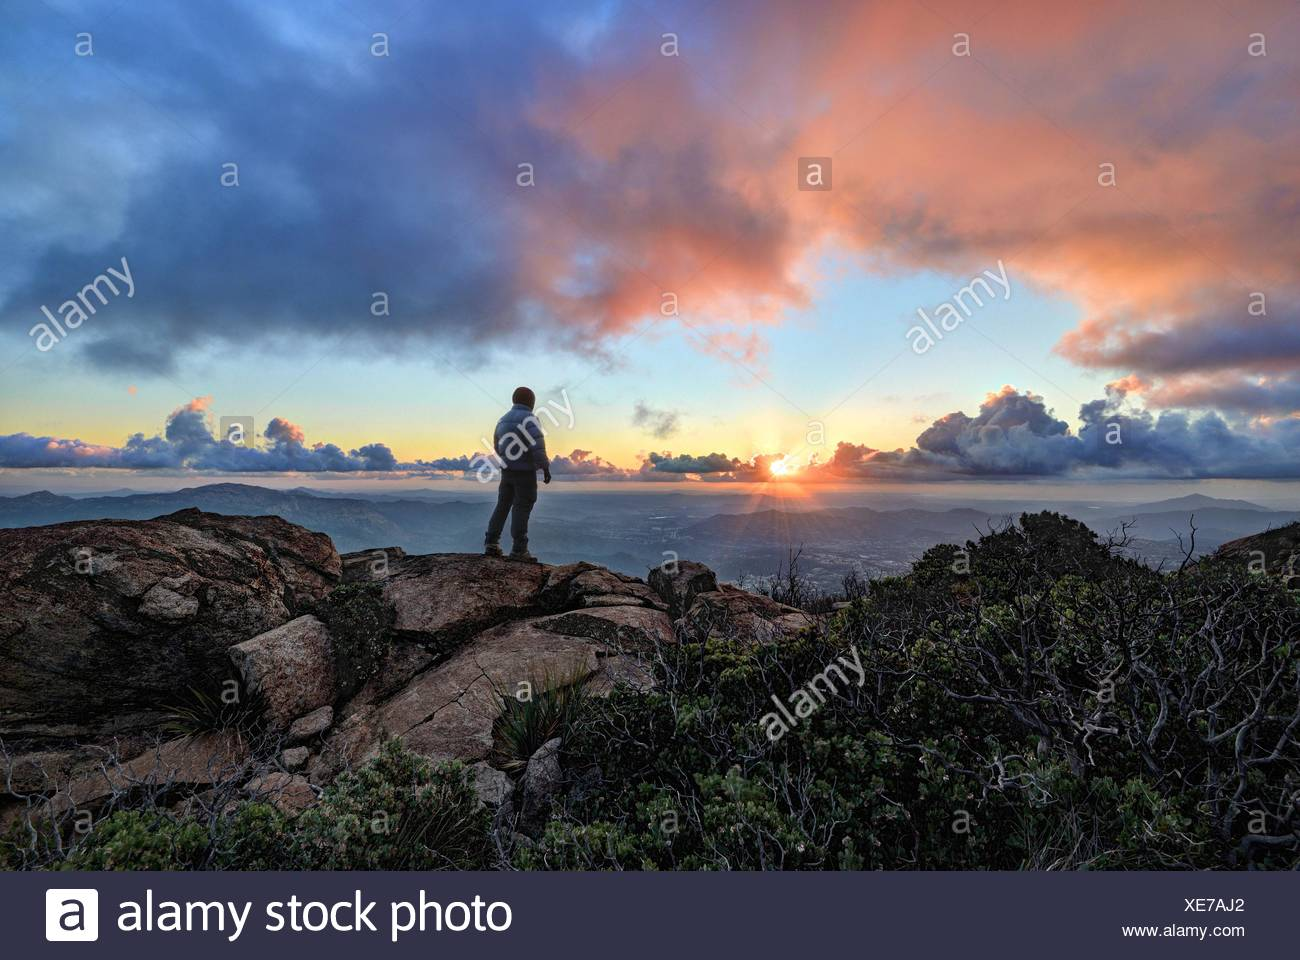 Mature man standing on a mountain at sunset, Cleveland National Forest, USA Stock Photo